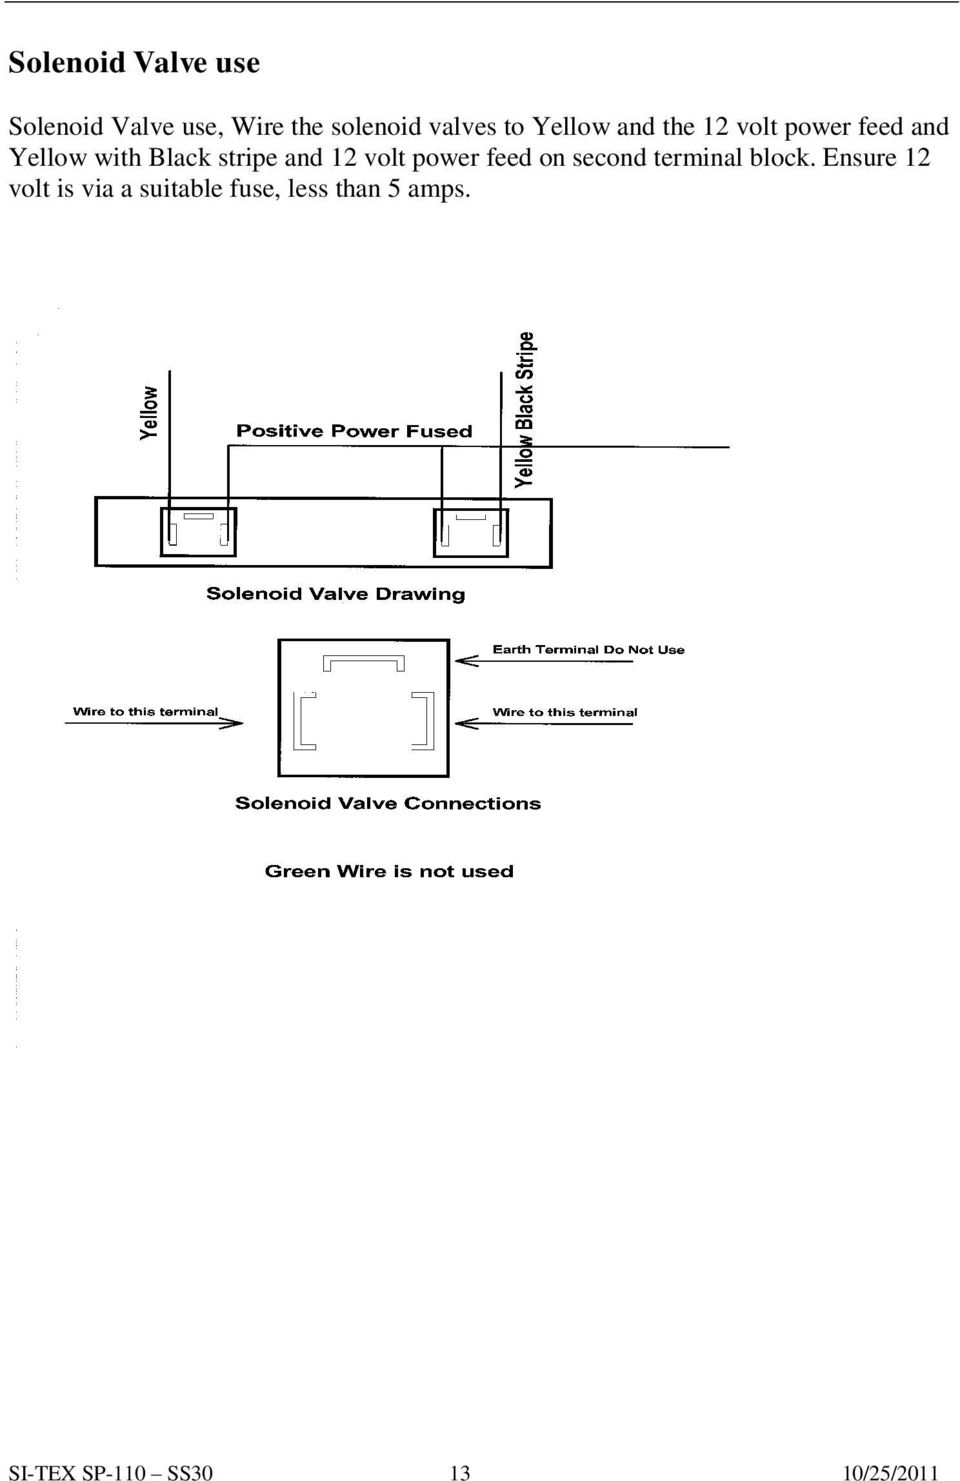 Sp 110 Autopilot Installation And Service Pdf 12 Volt Solenoid Wiring Diagram 5 Connection Power Feed On Second Terminal Block